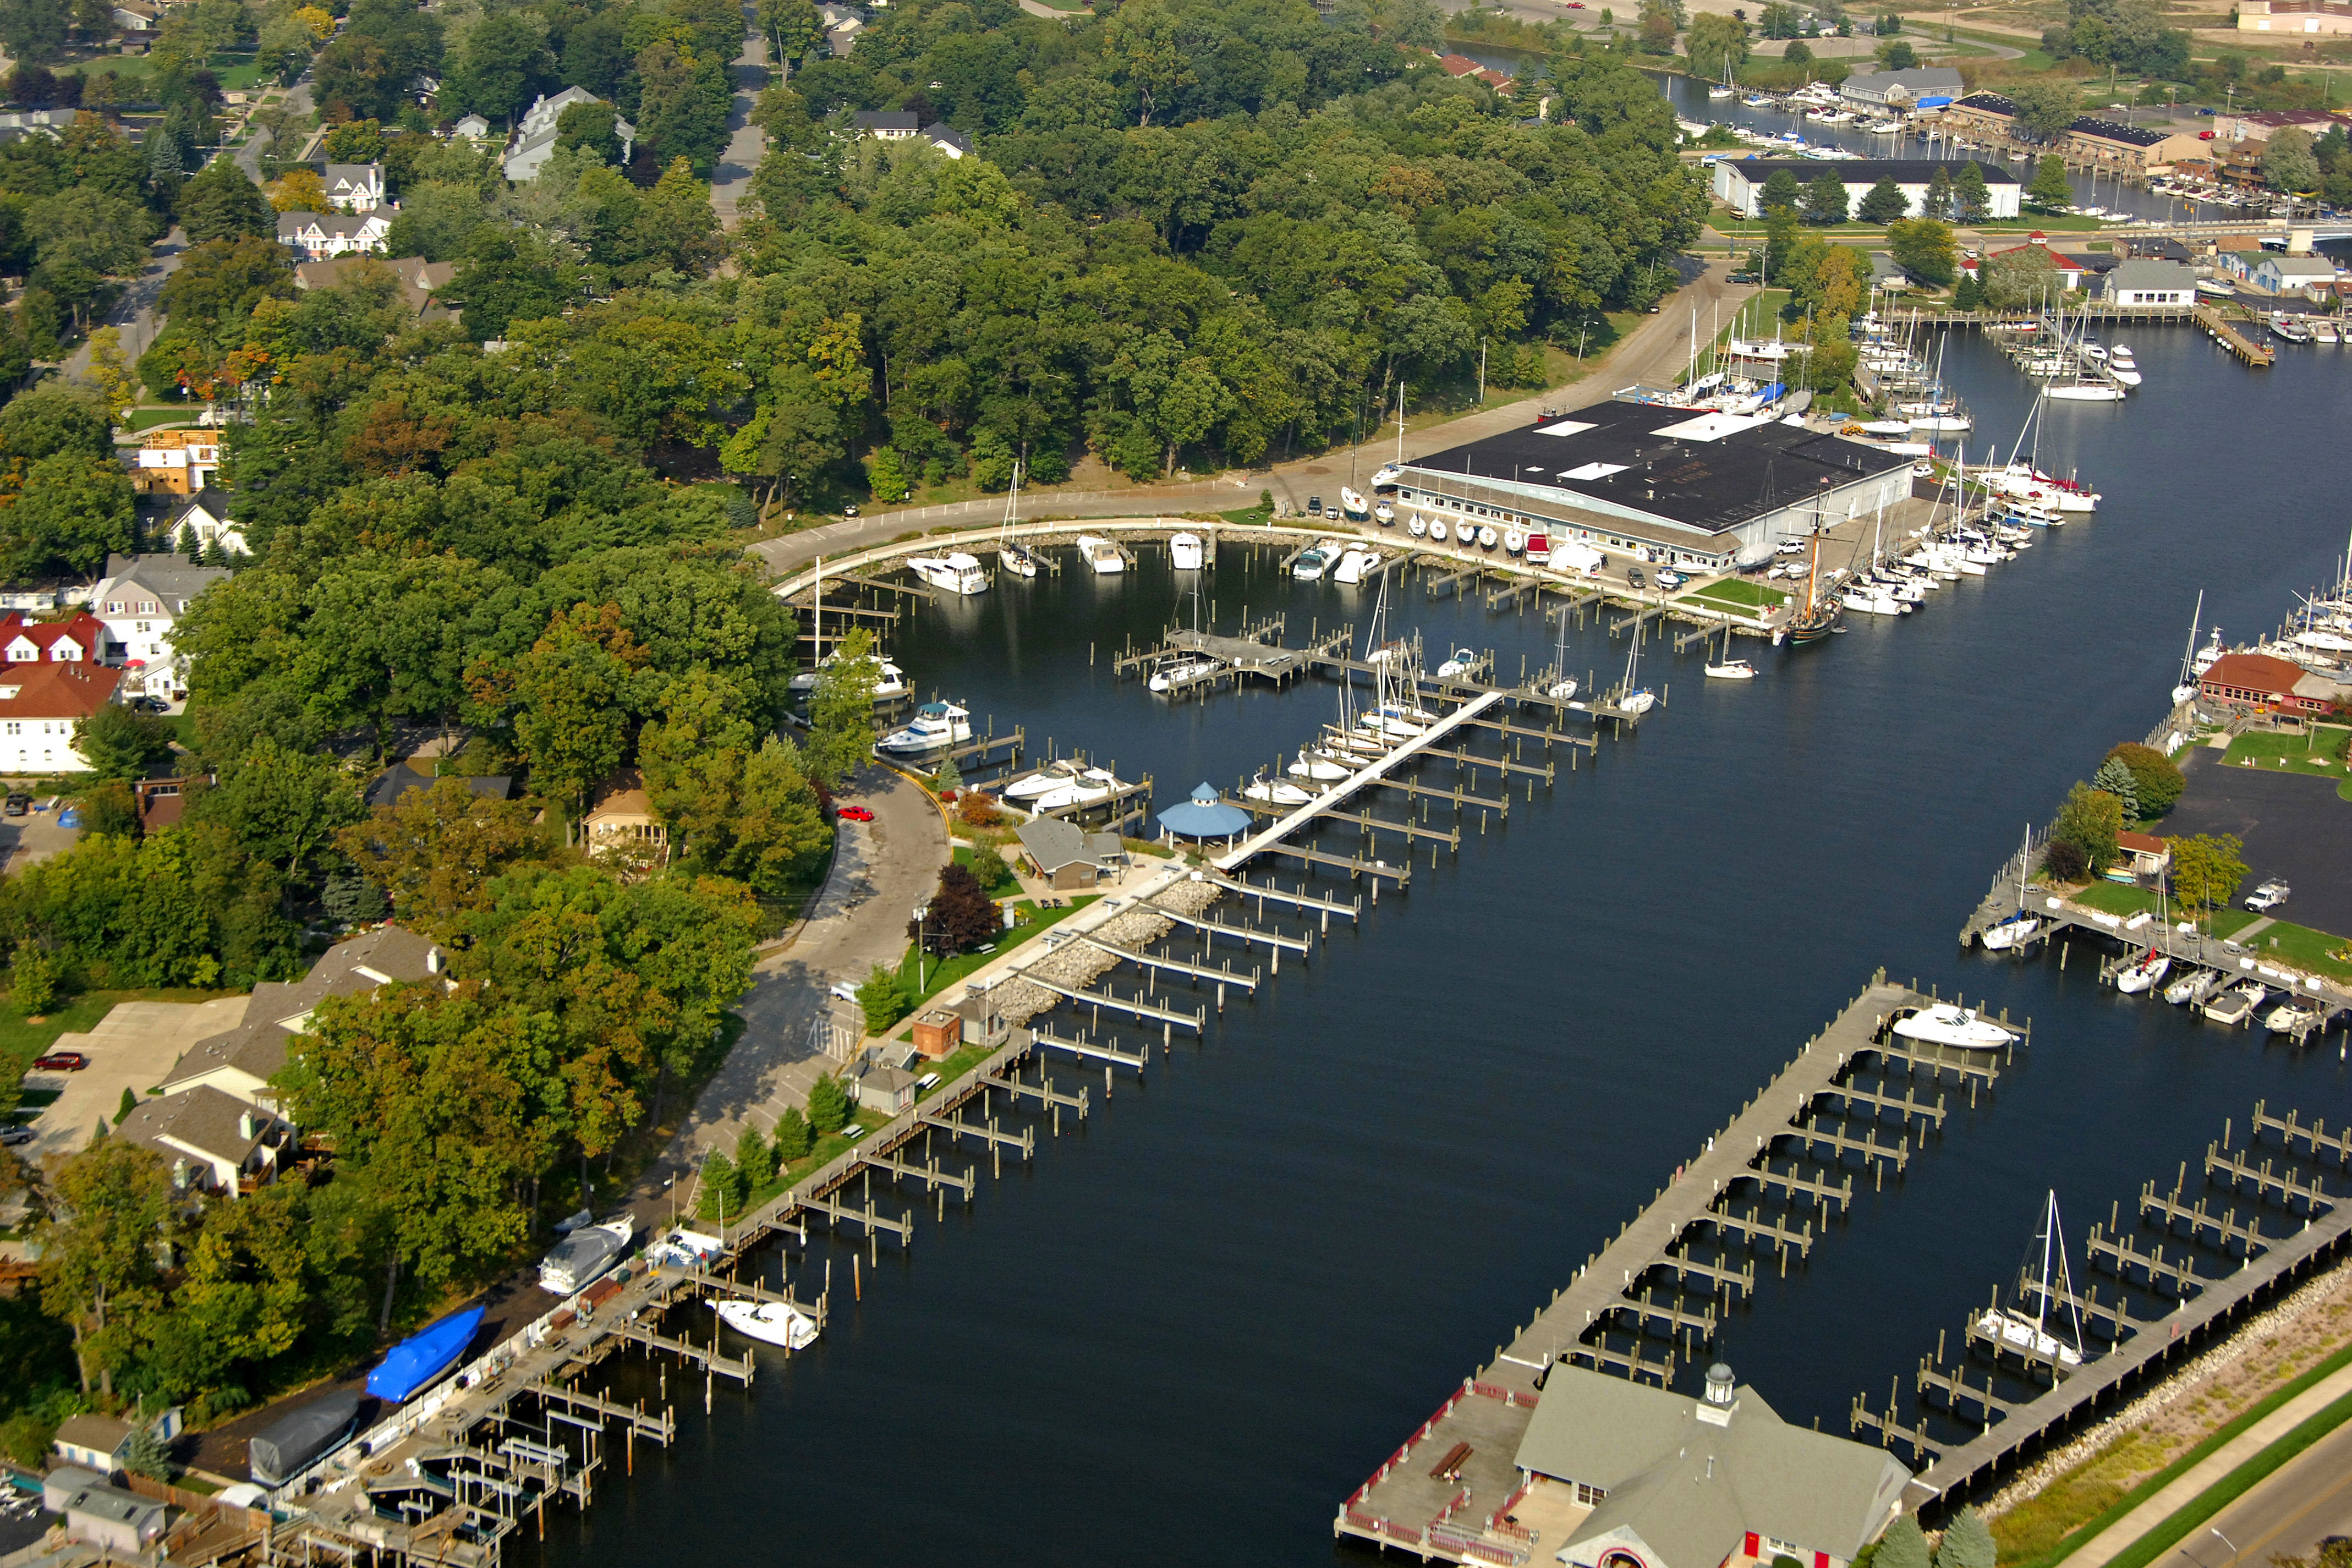 South Haven Municipal Marina #2 in South Haven, MI, United States